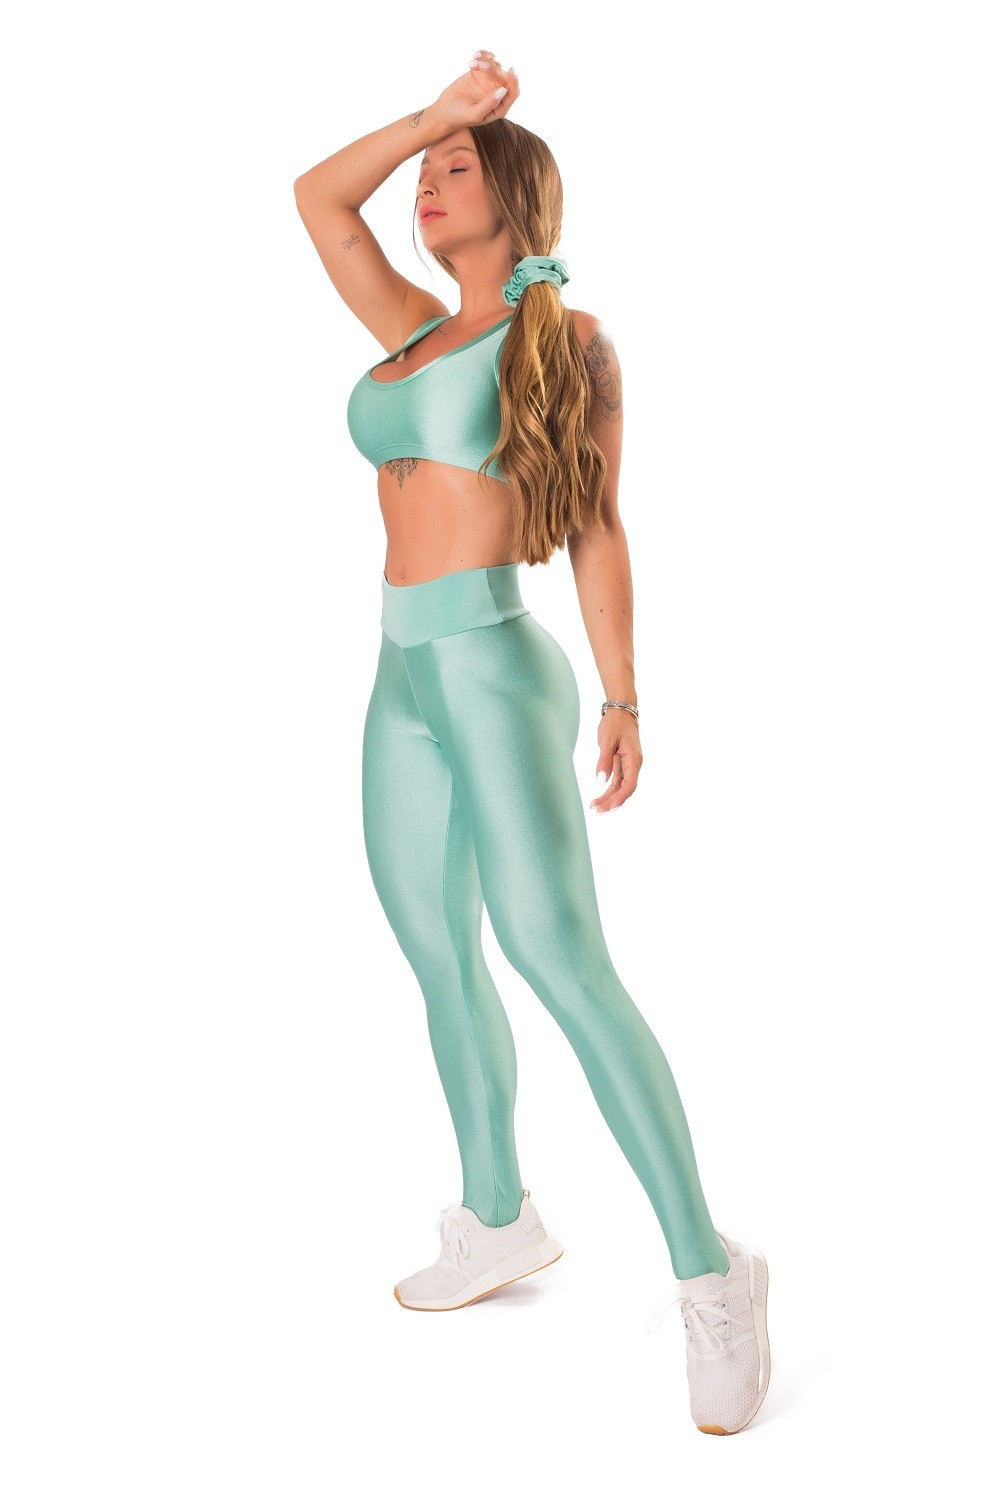 TOP ELECTRIC SHINE MENTA LETSGYM